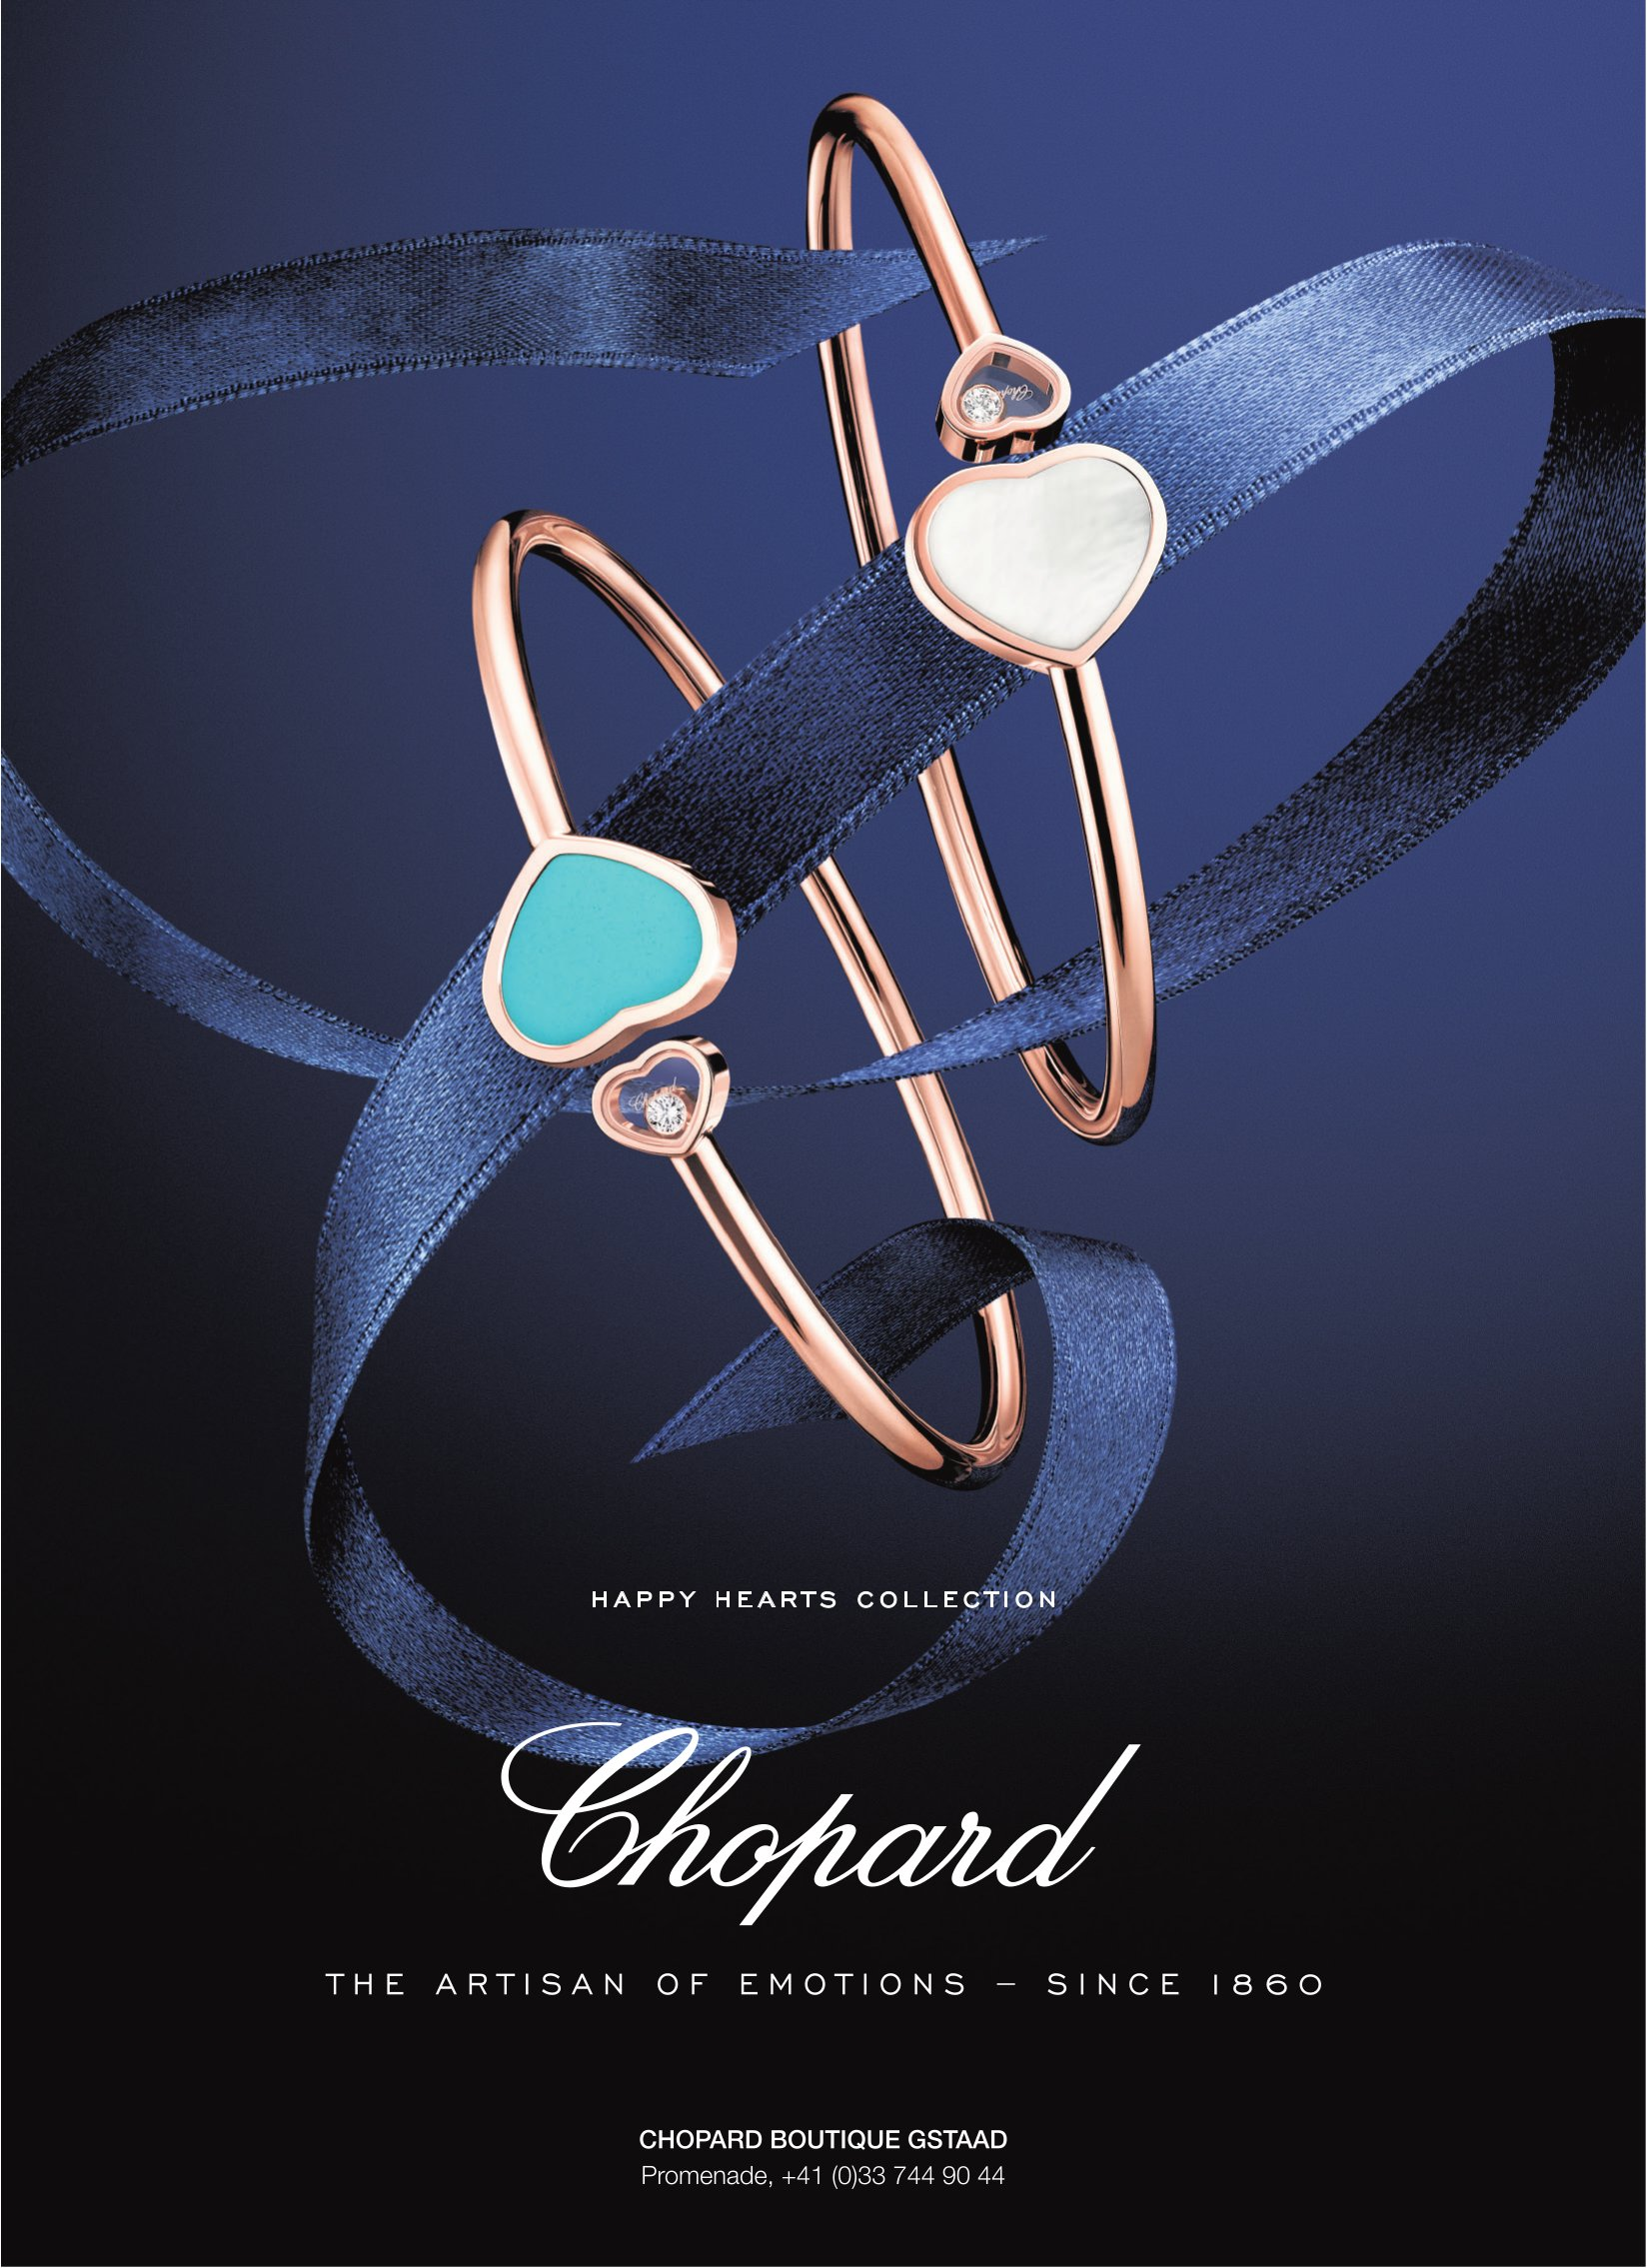 CHOPARD HAPPY HEARTS COLLECTION, CHOPARD BOUTIQUE GSTAAD